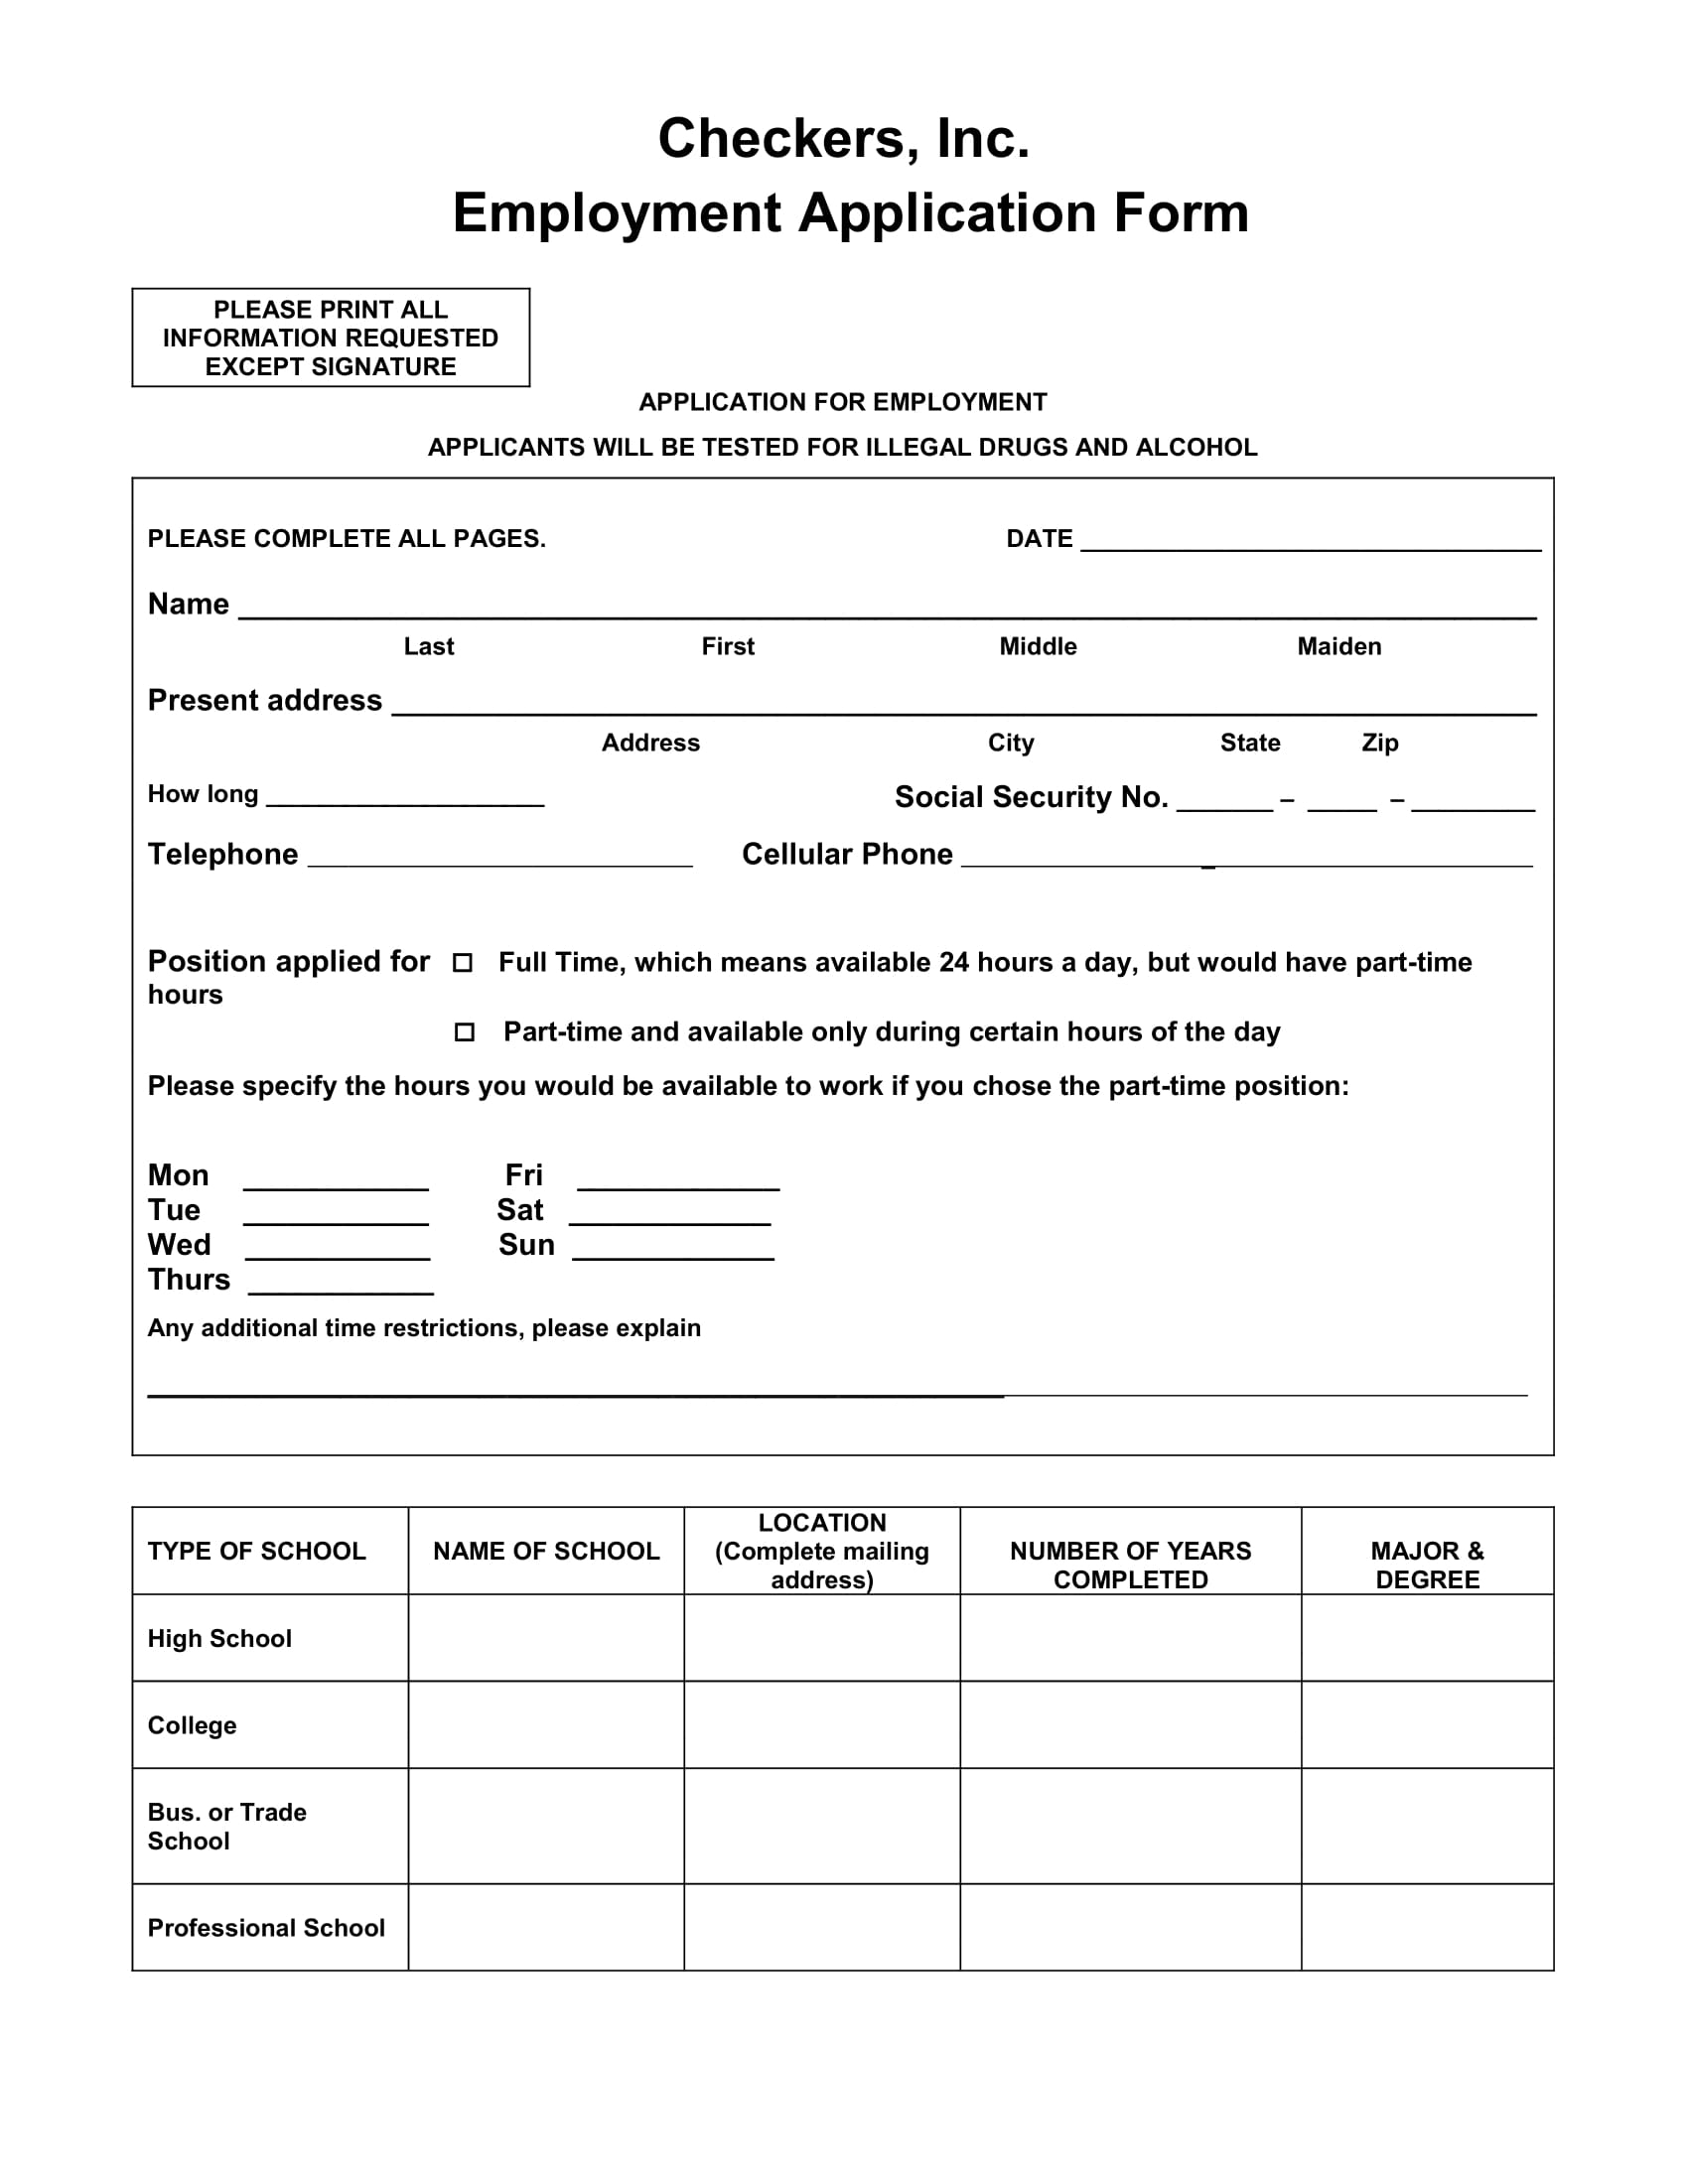 employment application form example